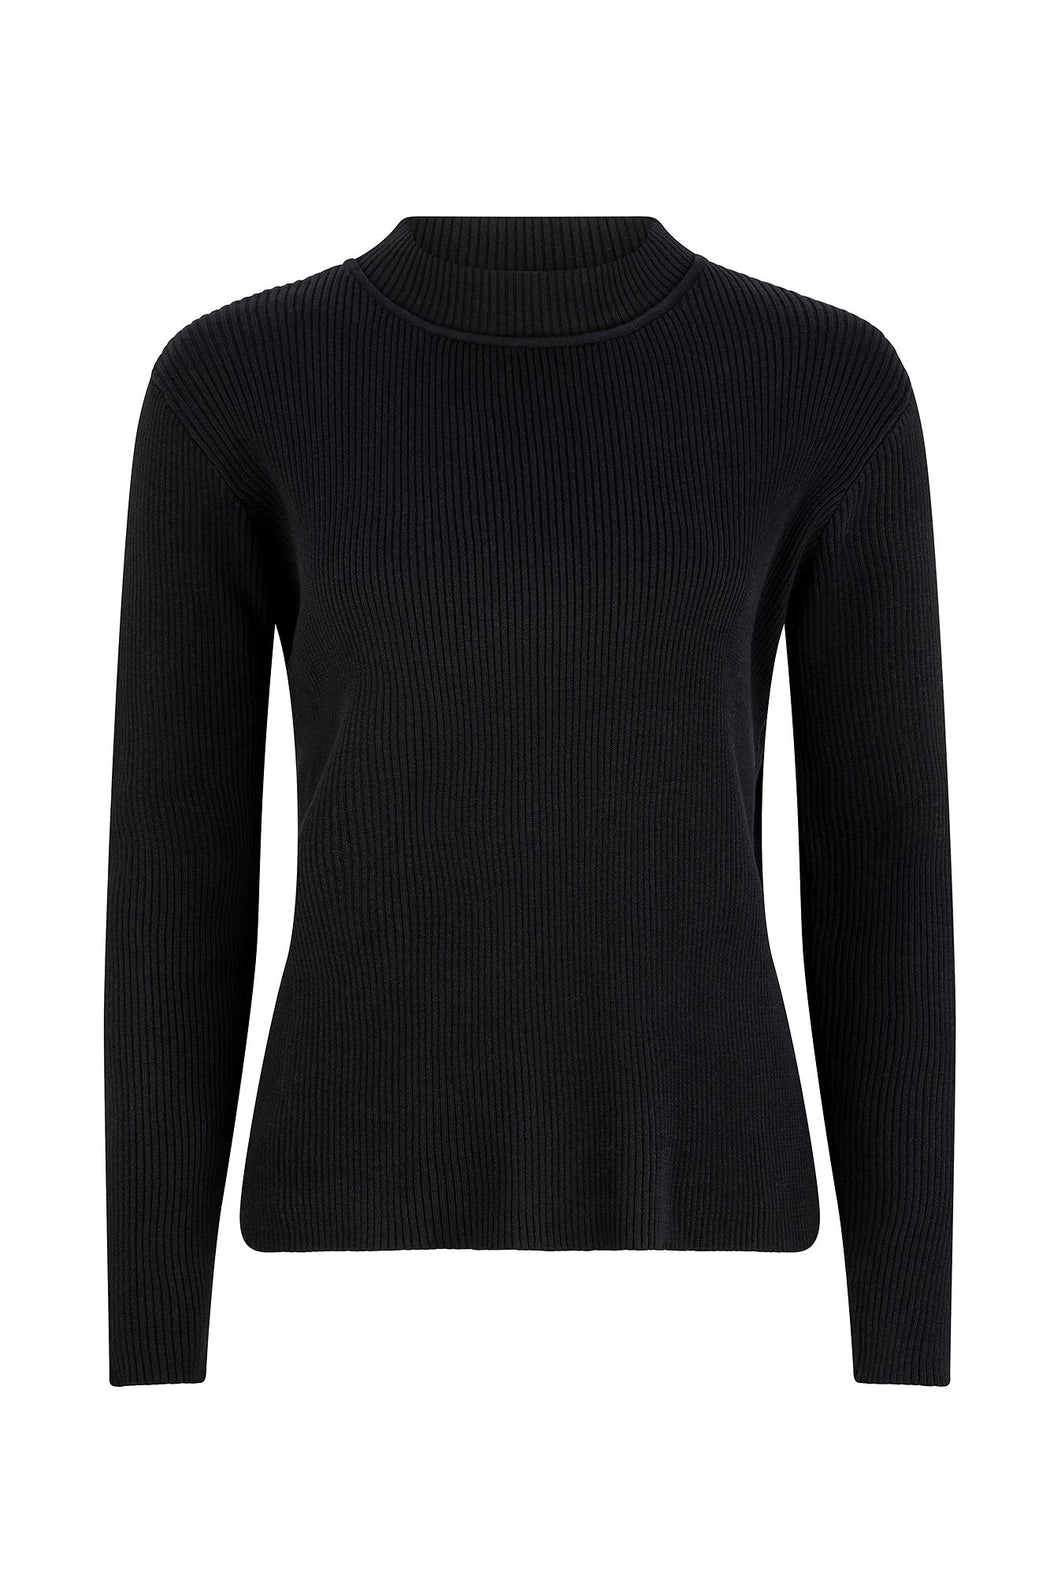 Jacqueline Knit - Midnight Black